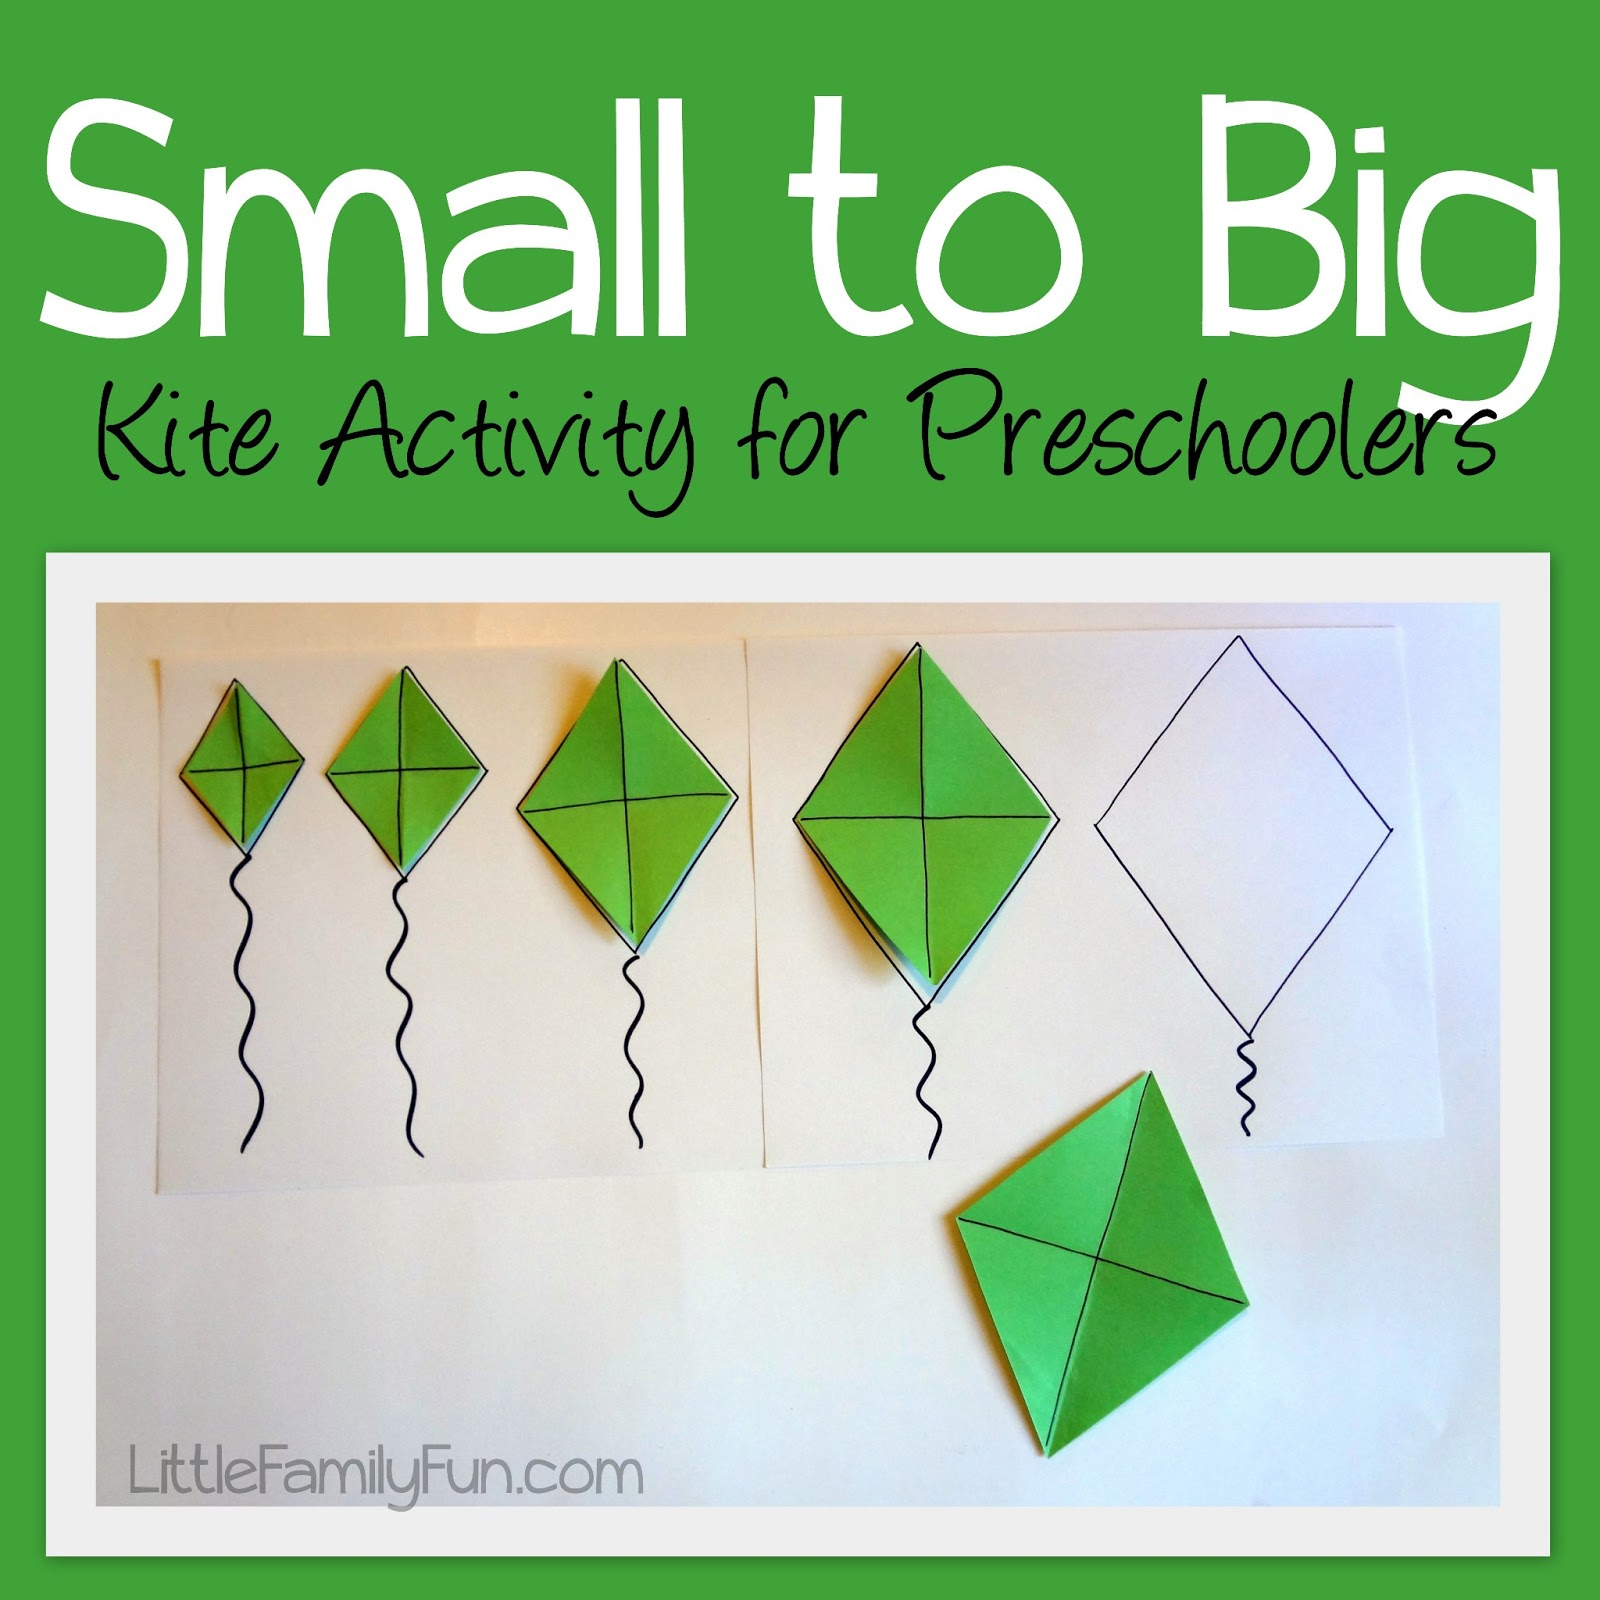 Little Family Fun Kite Sizes